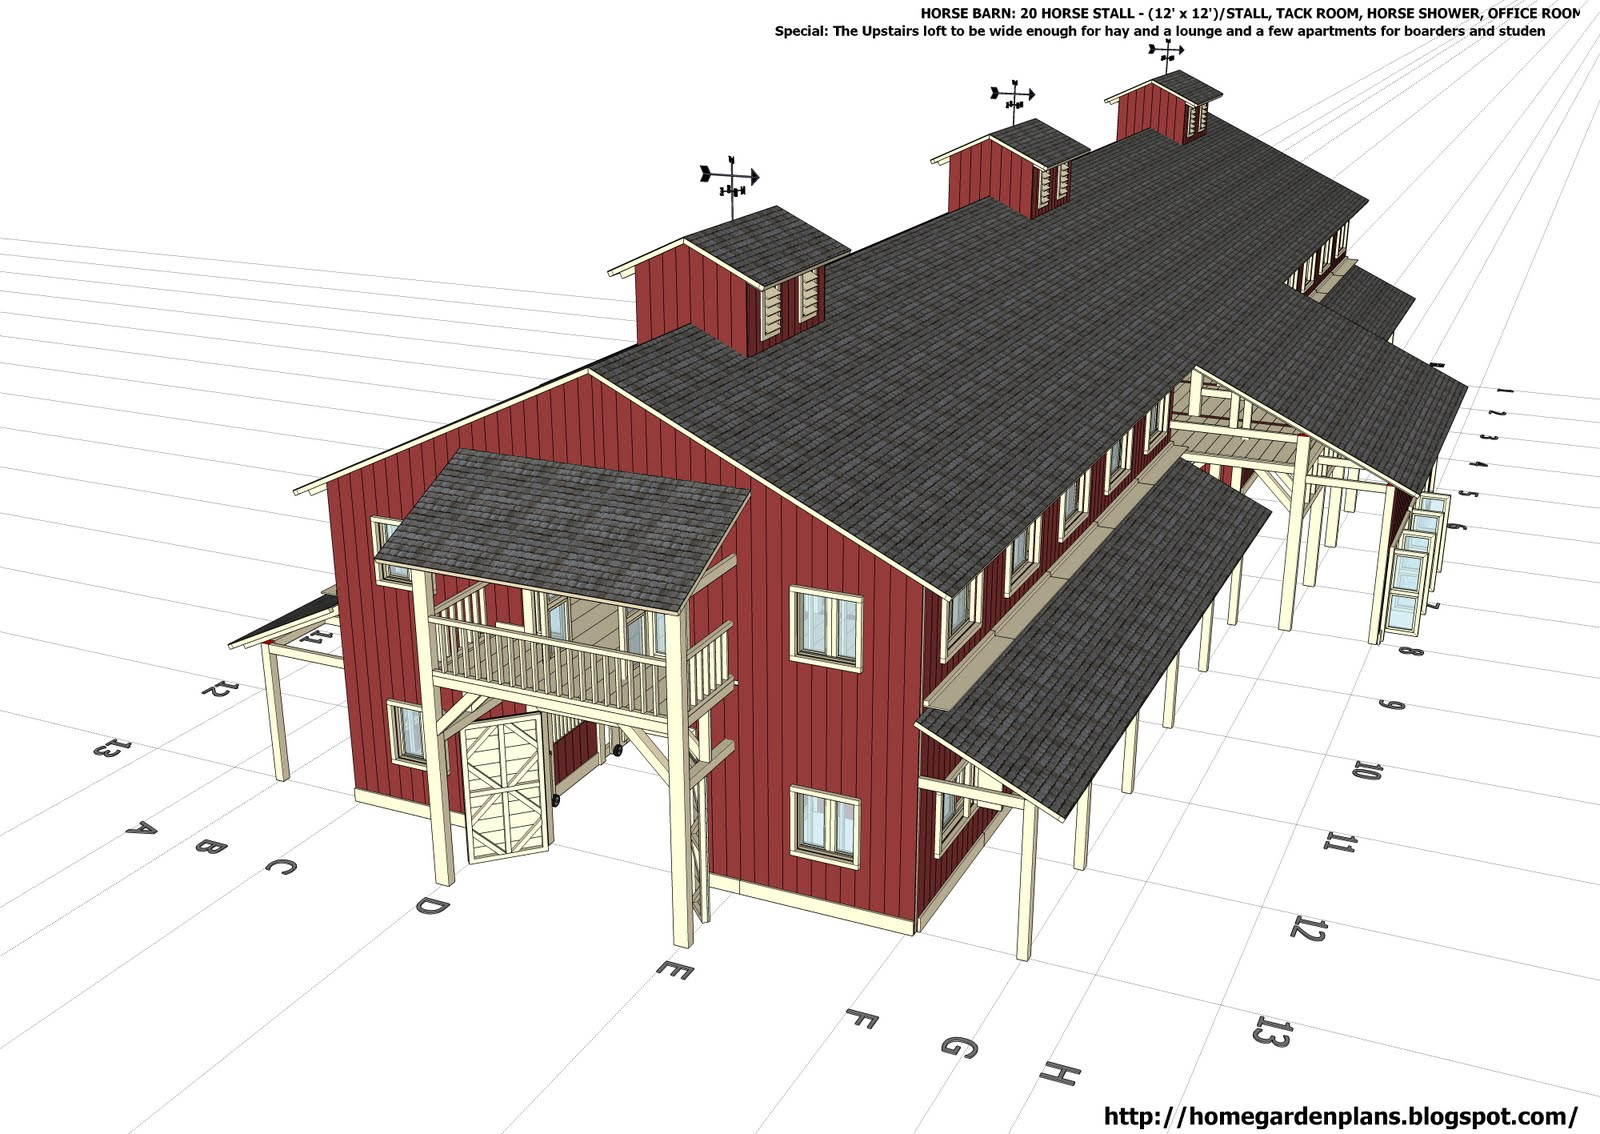 Home garden plans h20b1 20 stall horse barn plans Barn designs